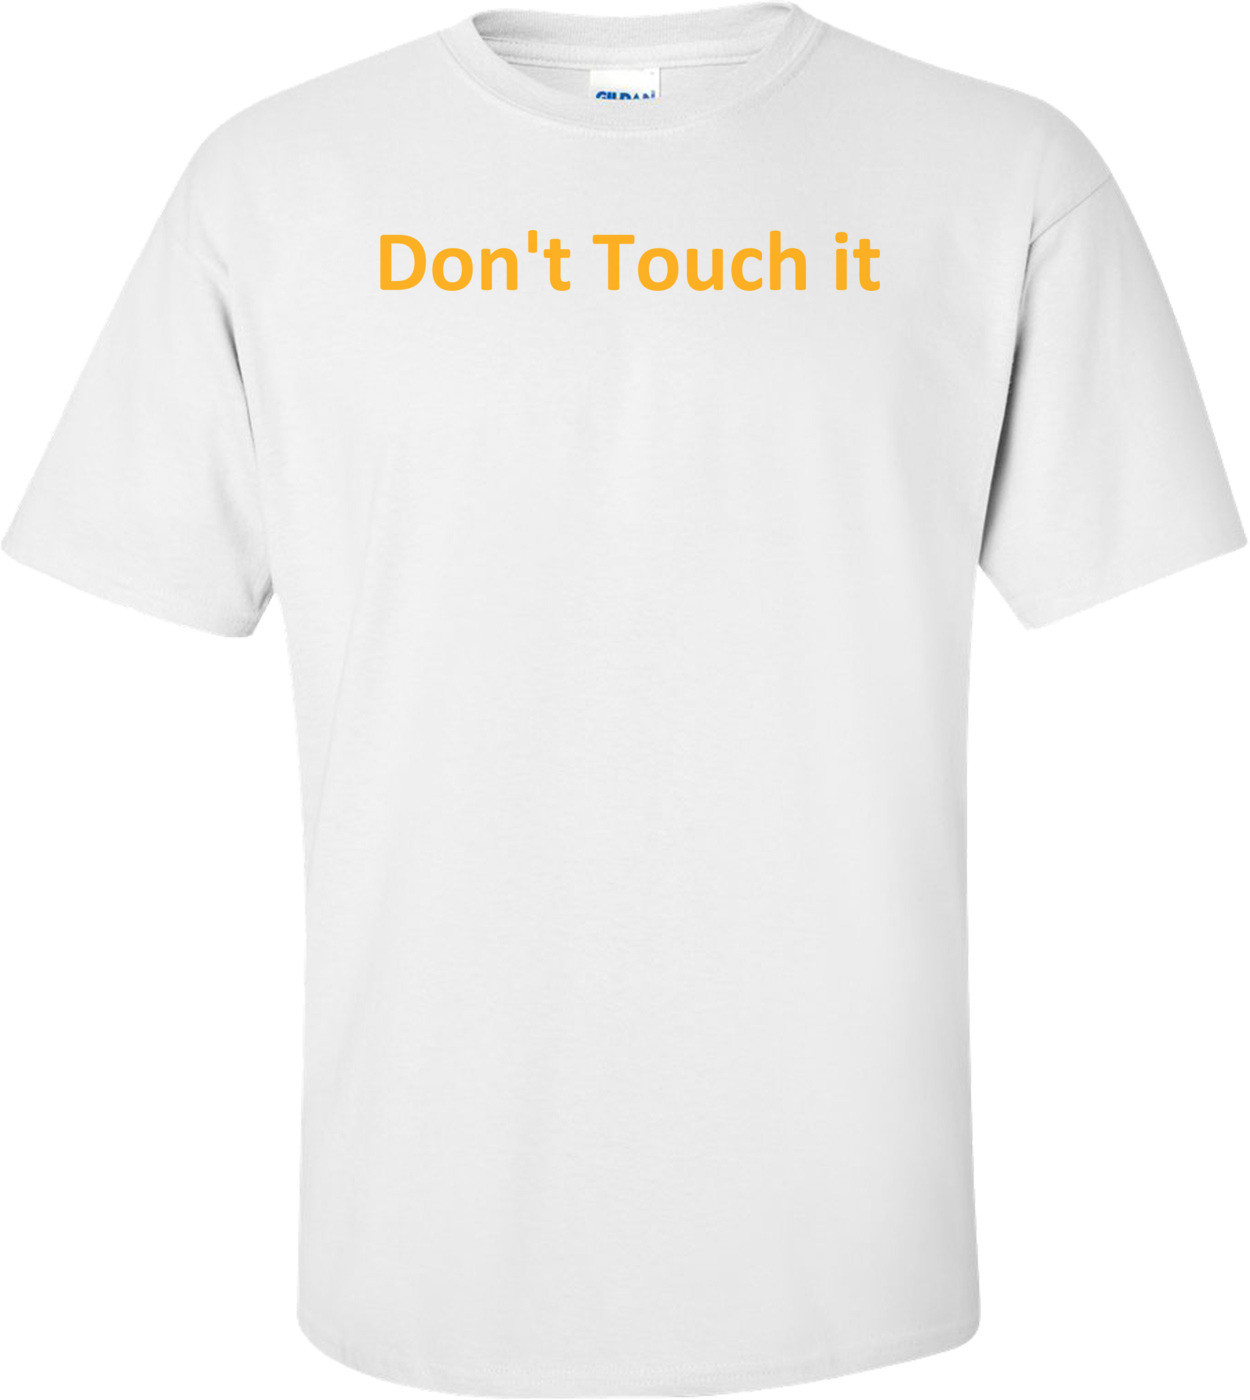 Don't Touch it T-Shirt